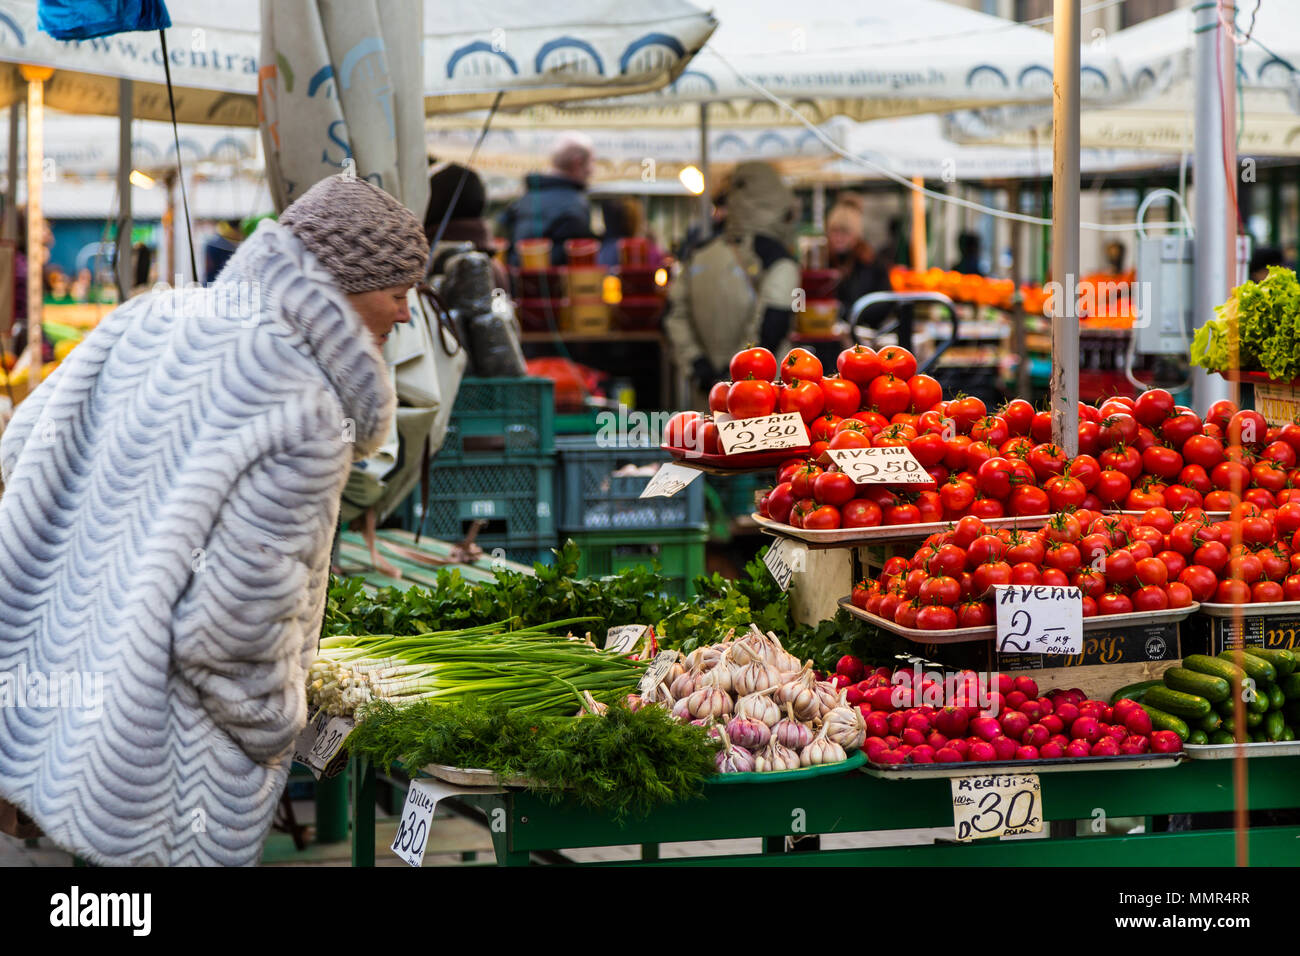 Woman looking at vegetables, Riga central market, Latvia - Stock Image